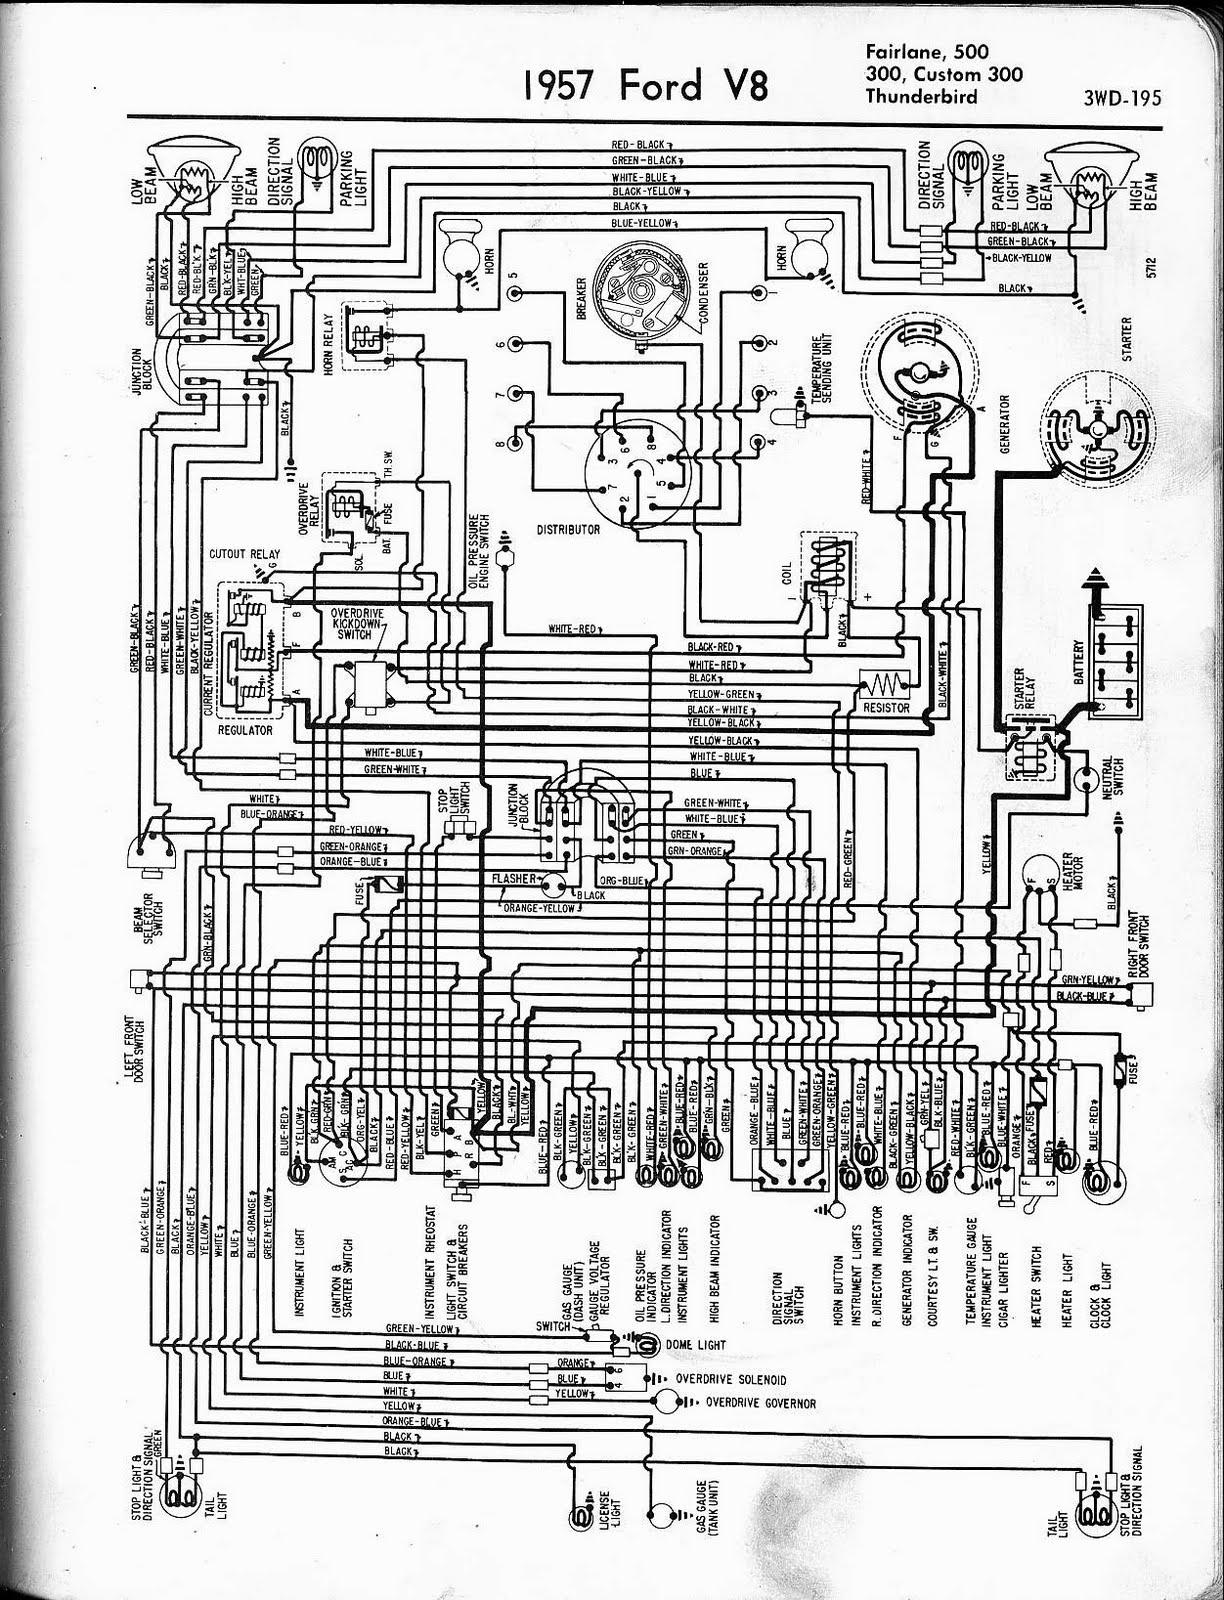 1988 Thunderbird Transmission Wiring Diagram Free Ford Terminals 1979 Origin Rh 16 2 Darklifezine De 4l60e Connector Gm